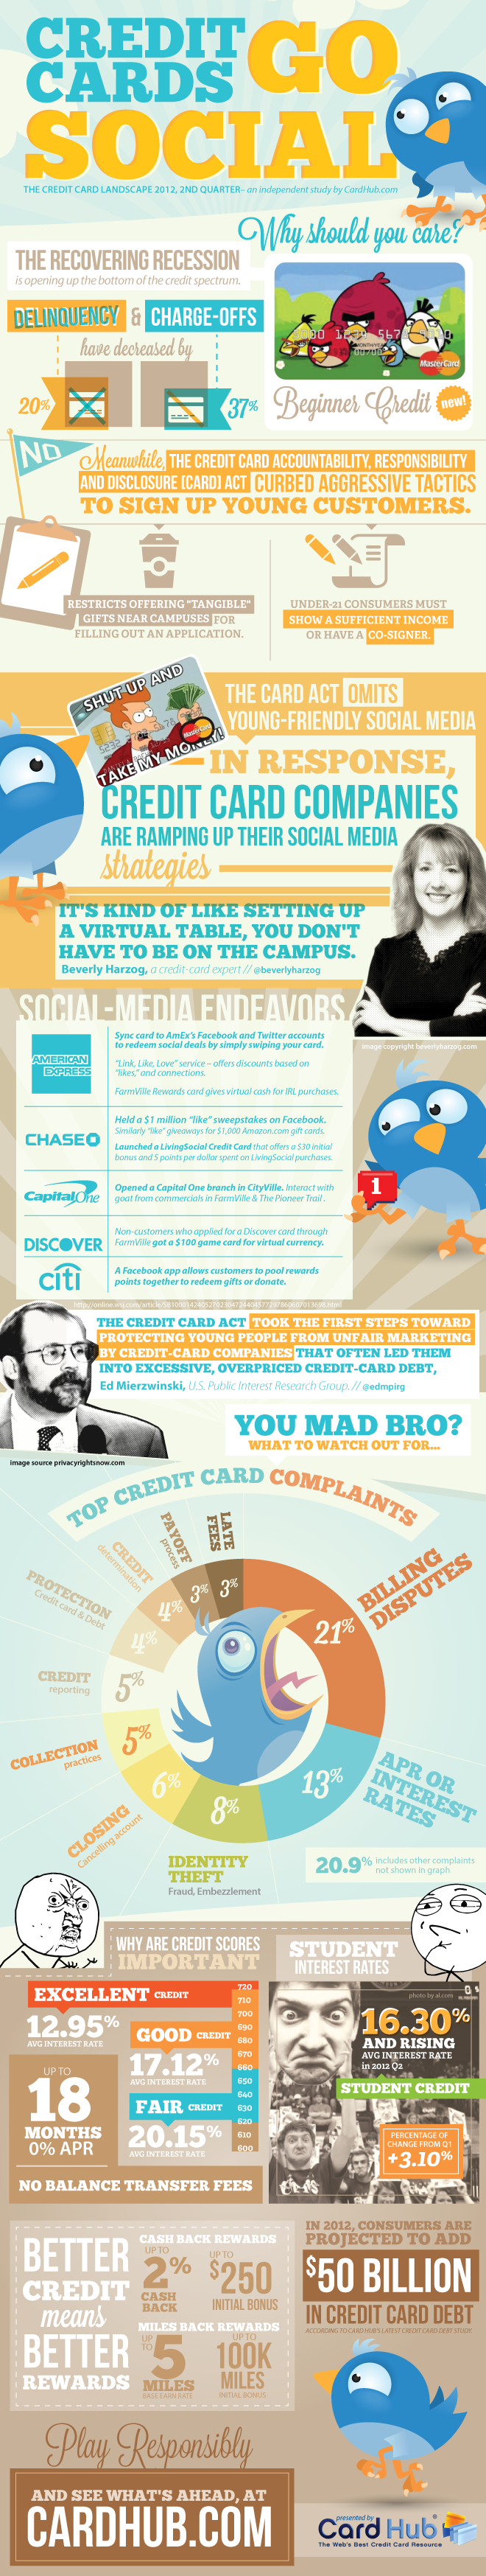 Credit-Cards-Social-Infographic